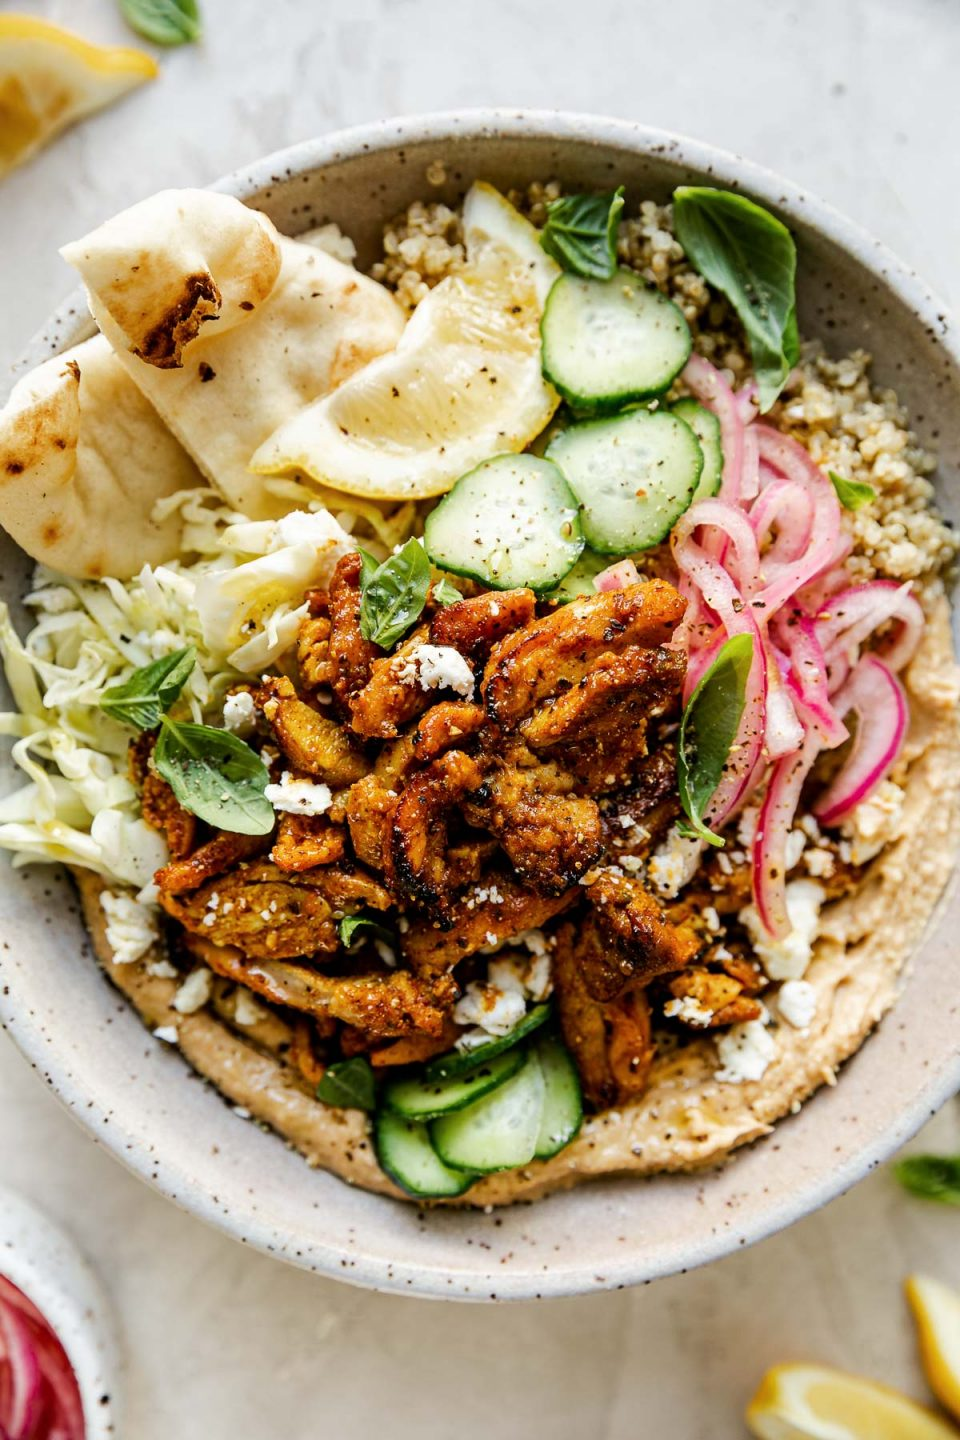 Chicken Shawarma Hummus Bowl with quinoa, cucumbers, pickled red onion, shredded cabbage, & naan bread shown in a speckled gray ceramic bowl. The bowl sits atop a creamy cement surface, surrounded by lemon wedges, fresh basil leaves & a small bowl of pickled red onions.